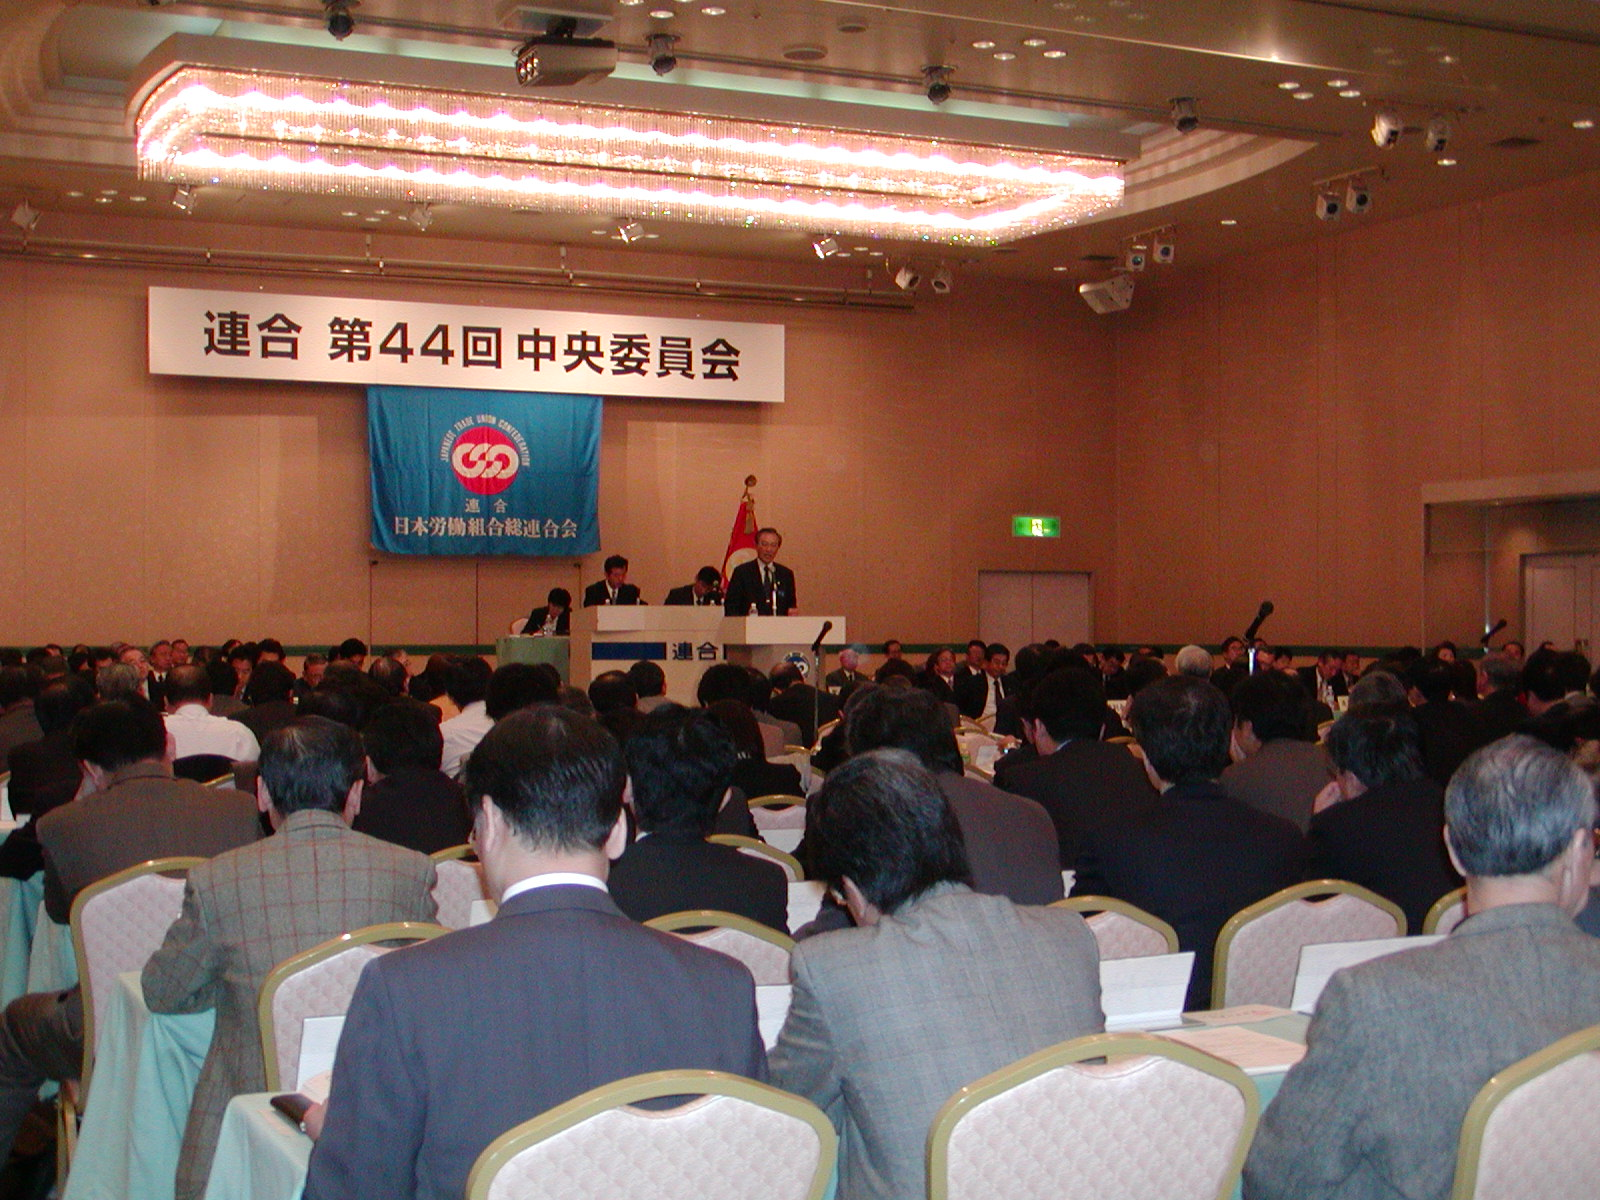 Photo: The 2005 Spring Struggle Policy is endorsed at the meeting. (November 25, Hotel Langwood)